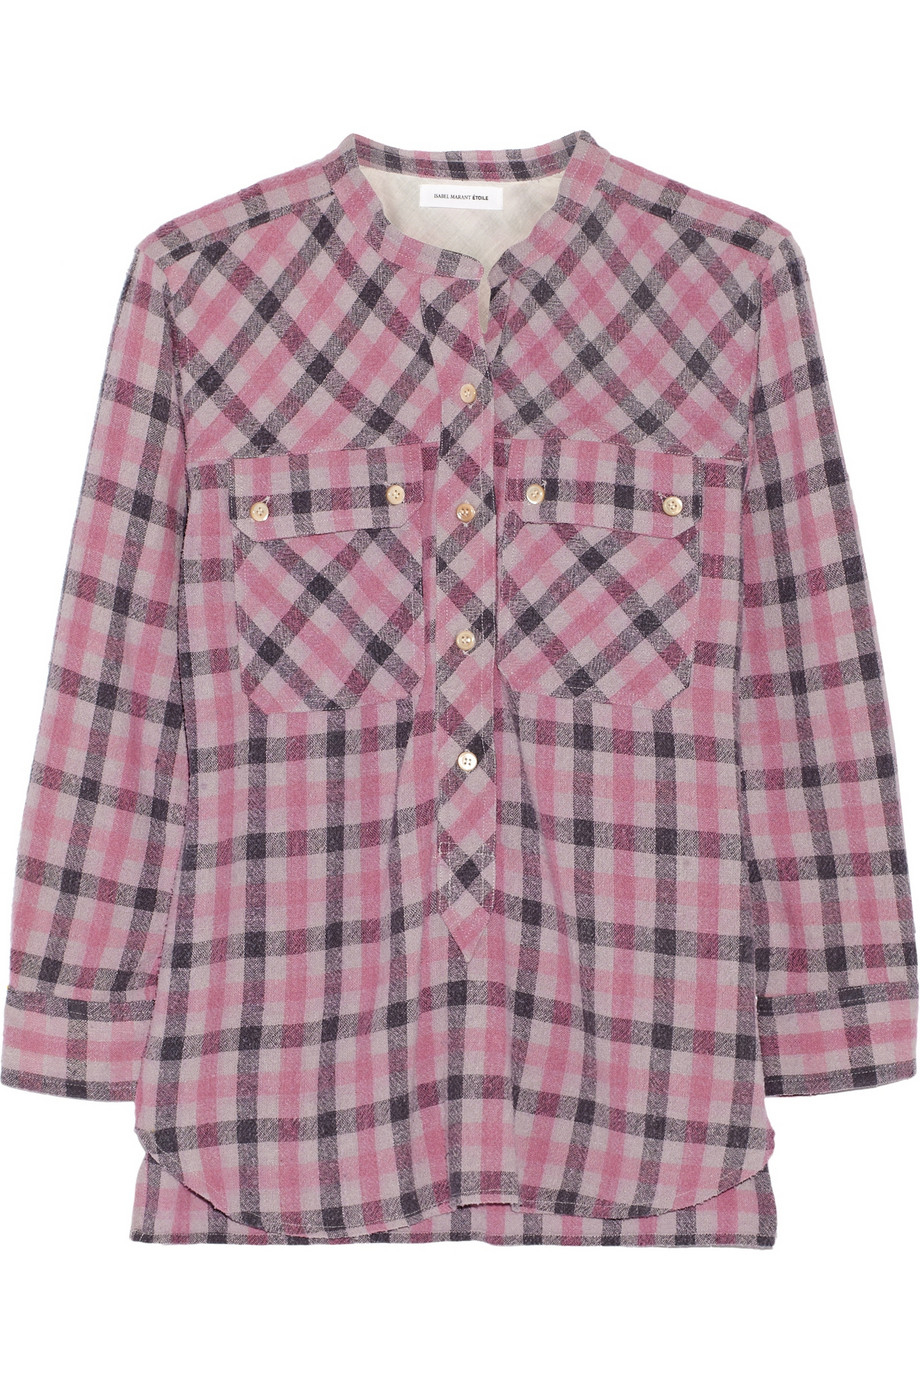 Discount Footaction Étoile Isabel Marant Silk Gingham Blouse Newest Sale Online qvJVXPC